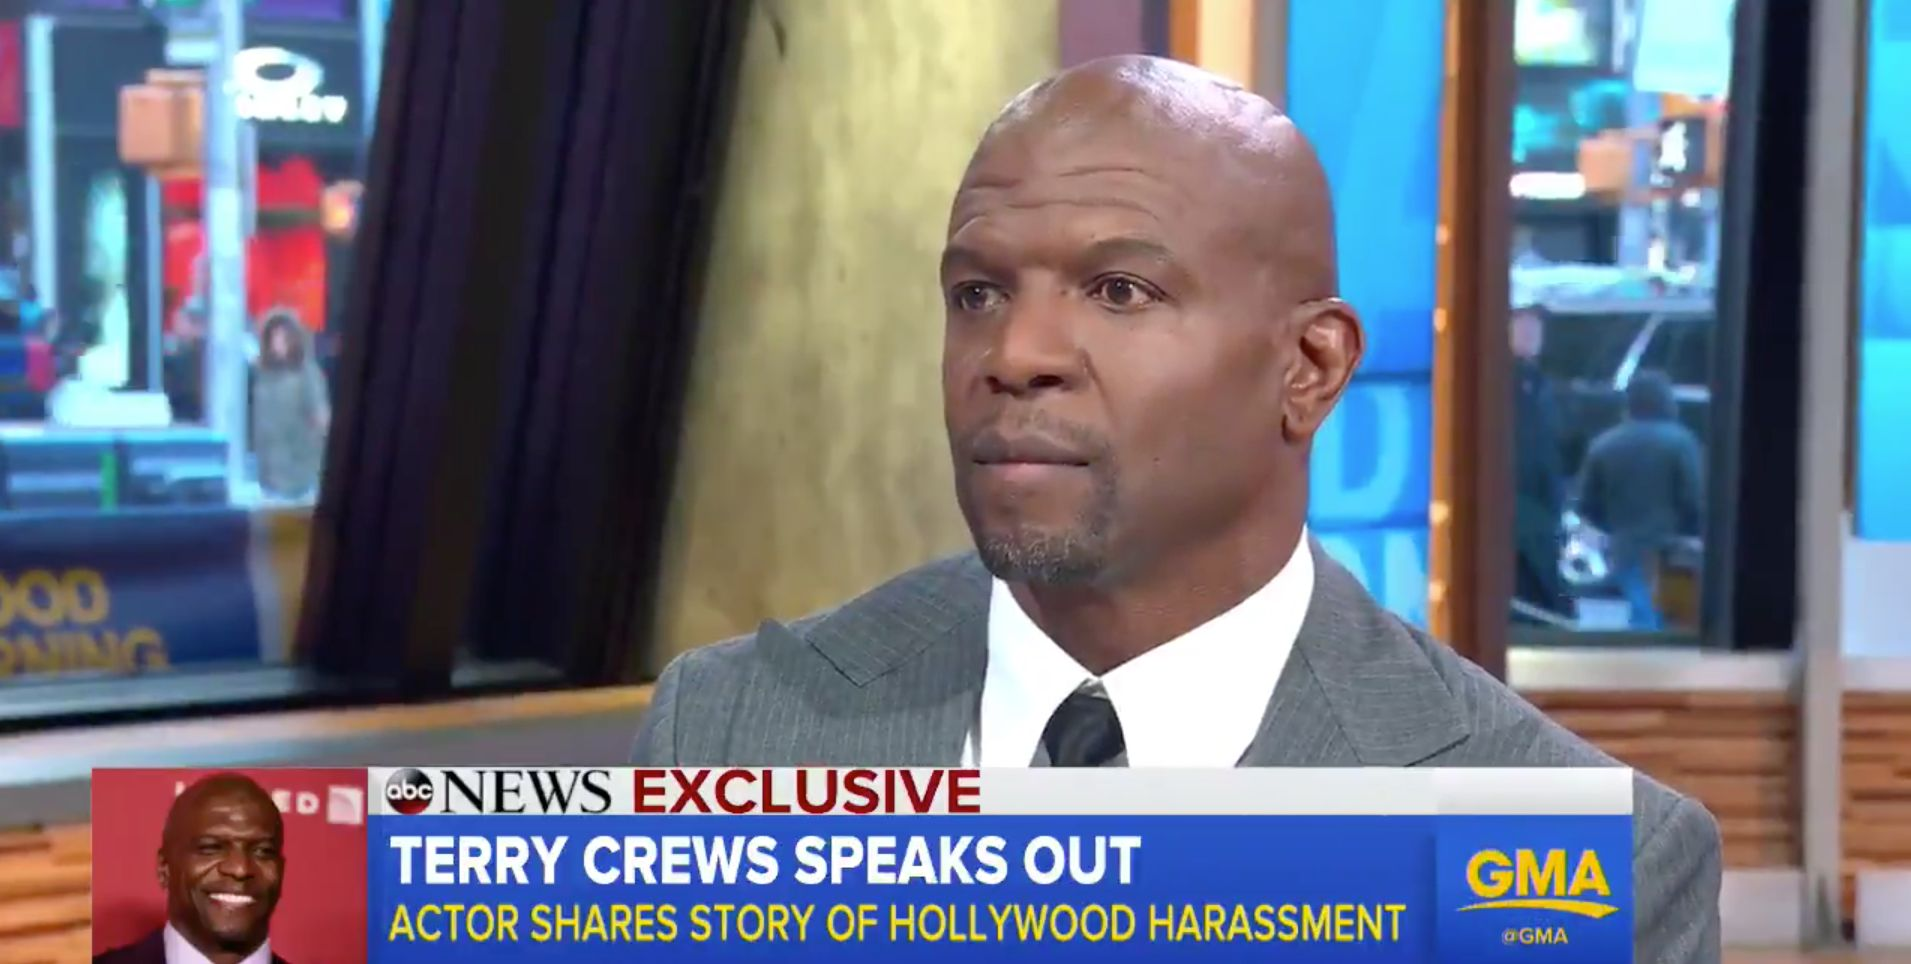 Actor Terry Crews publicly called out the man he says sexually harassed him at a Hollywood party last year